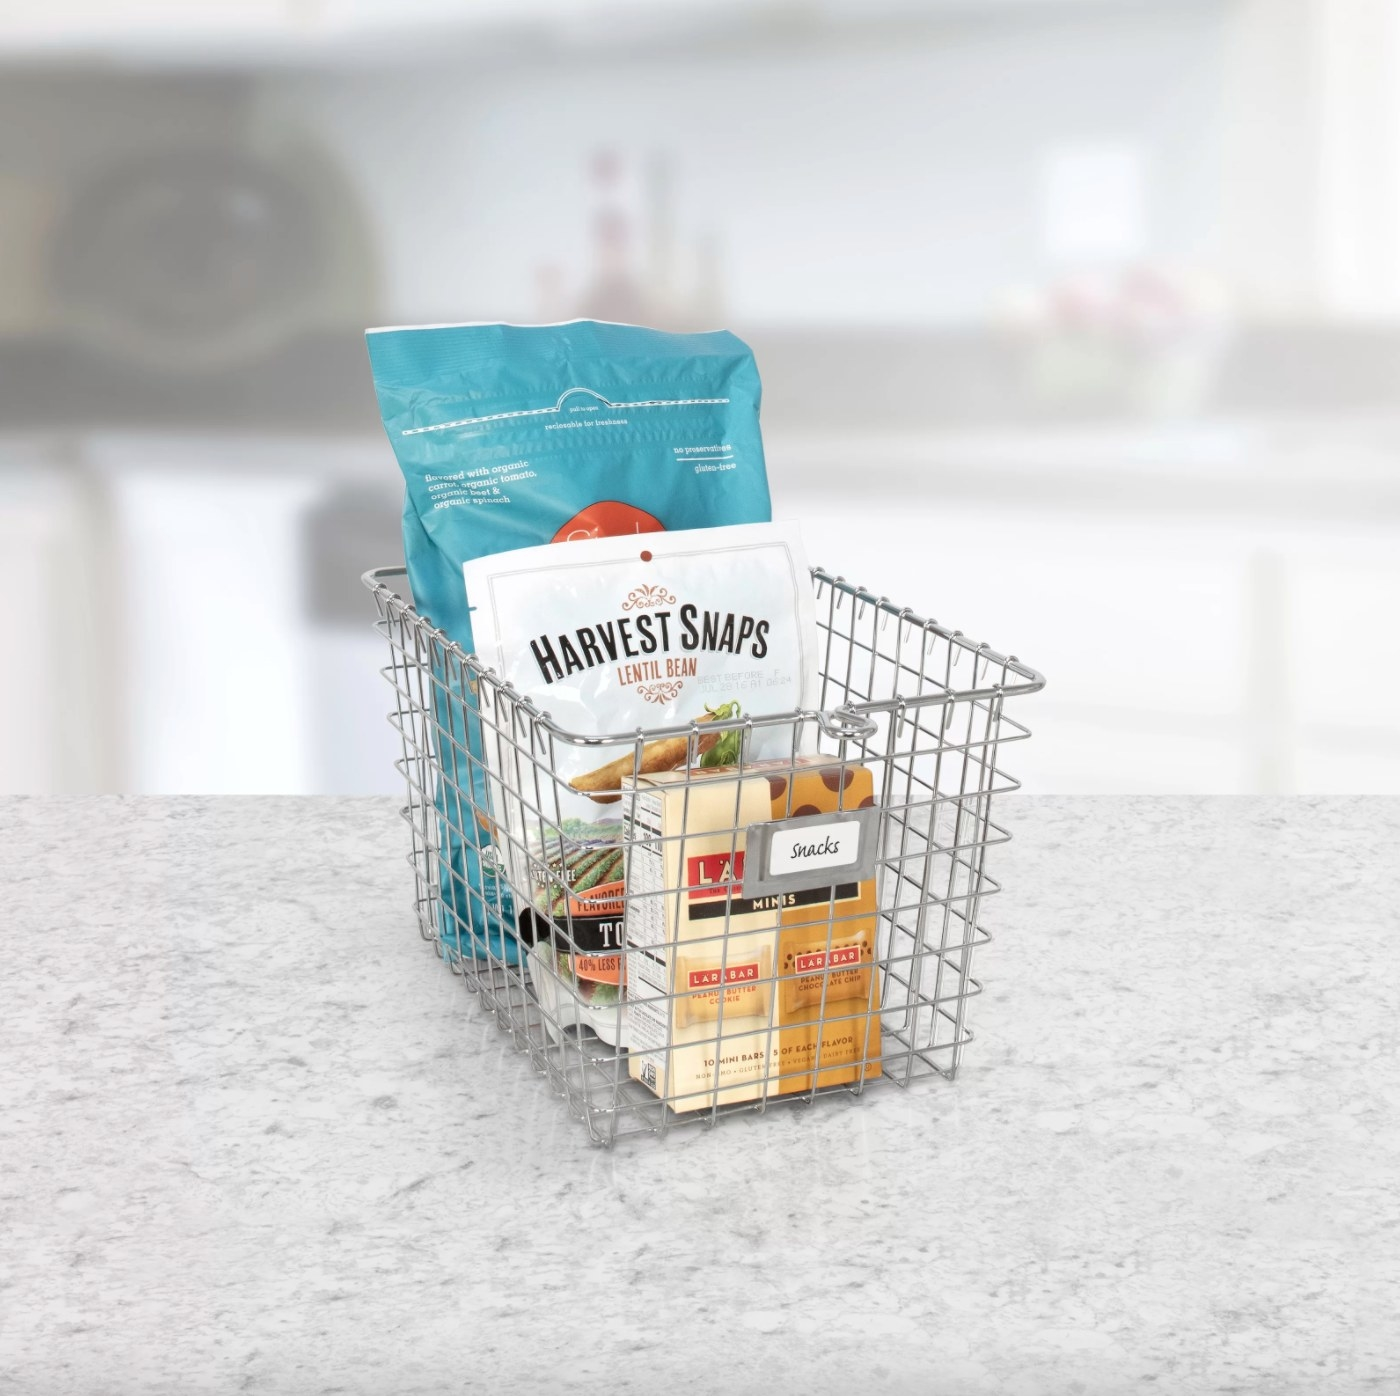 The wire basket holding snacks